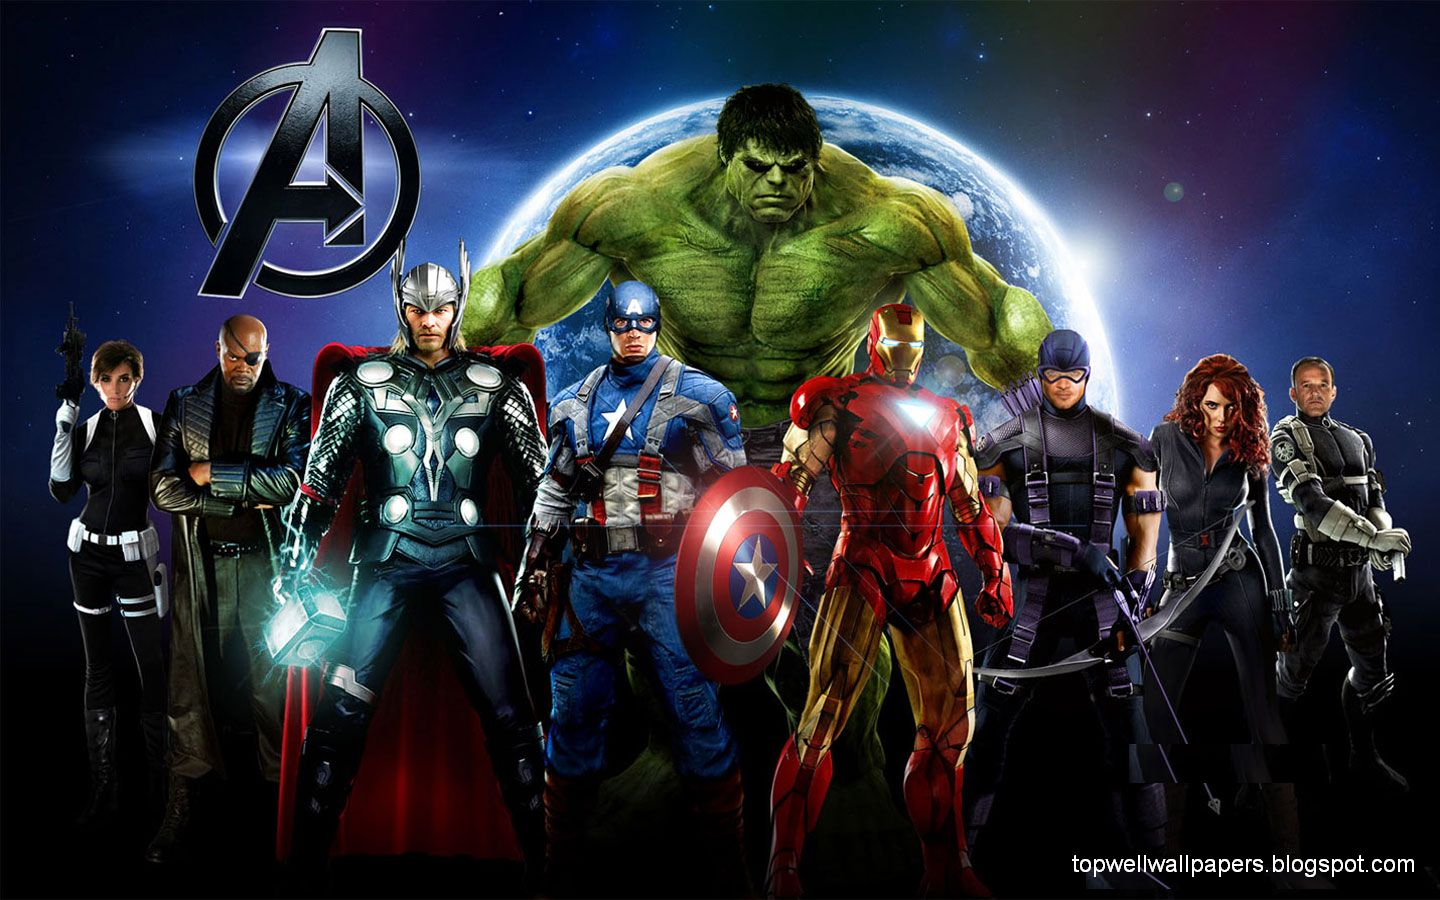 BEST HD WALLPAPERS Movies hd wallpapers 1440x900